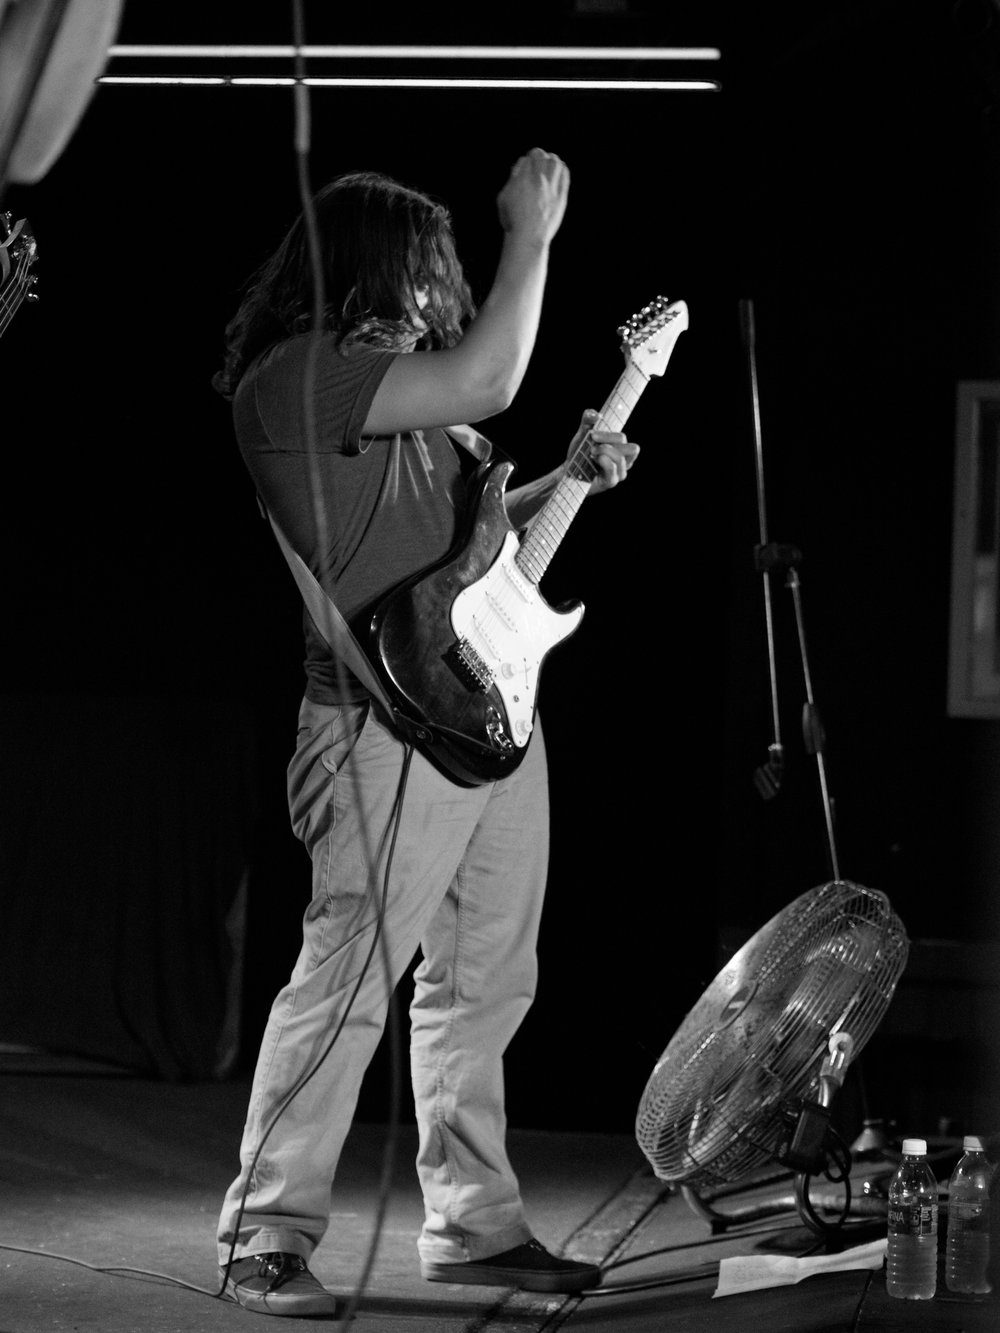 17-06-10_Concert_at_the_Foundry_6100131.JPG